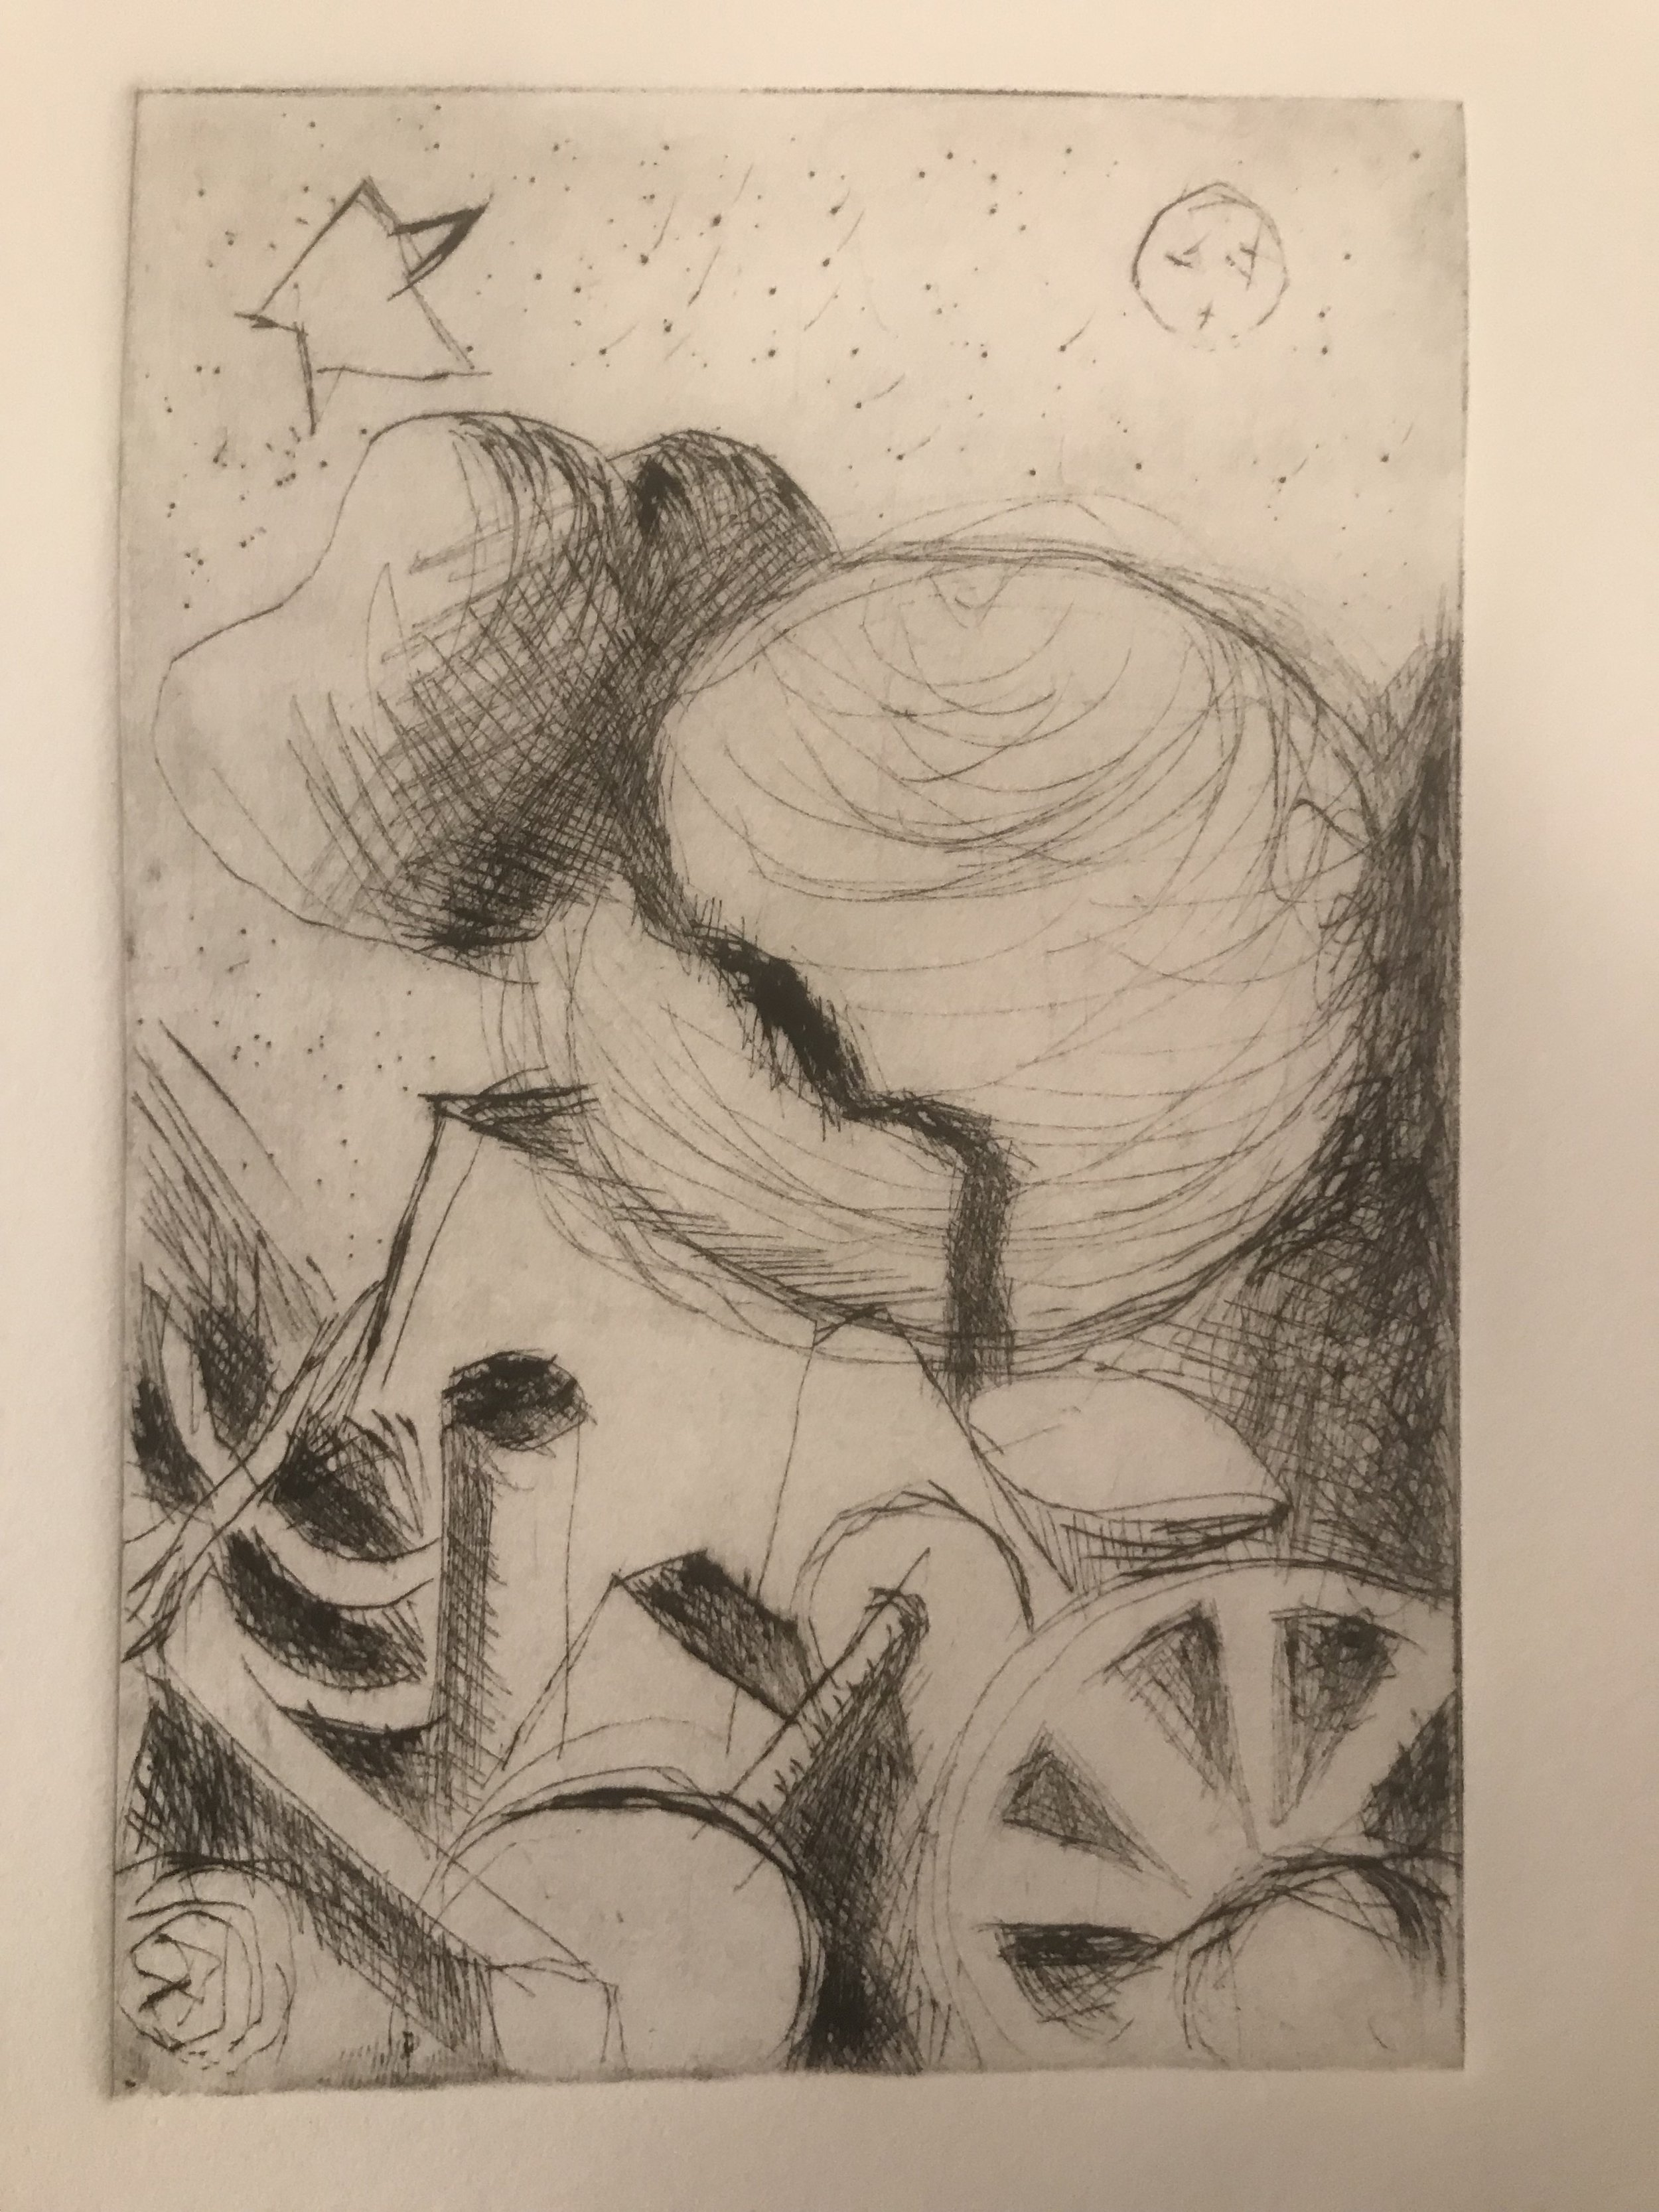 I did a drypoint workshop at Harvard Art Museum's Material Lab and made this thinking about my reductive wood prints.